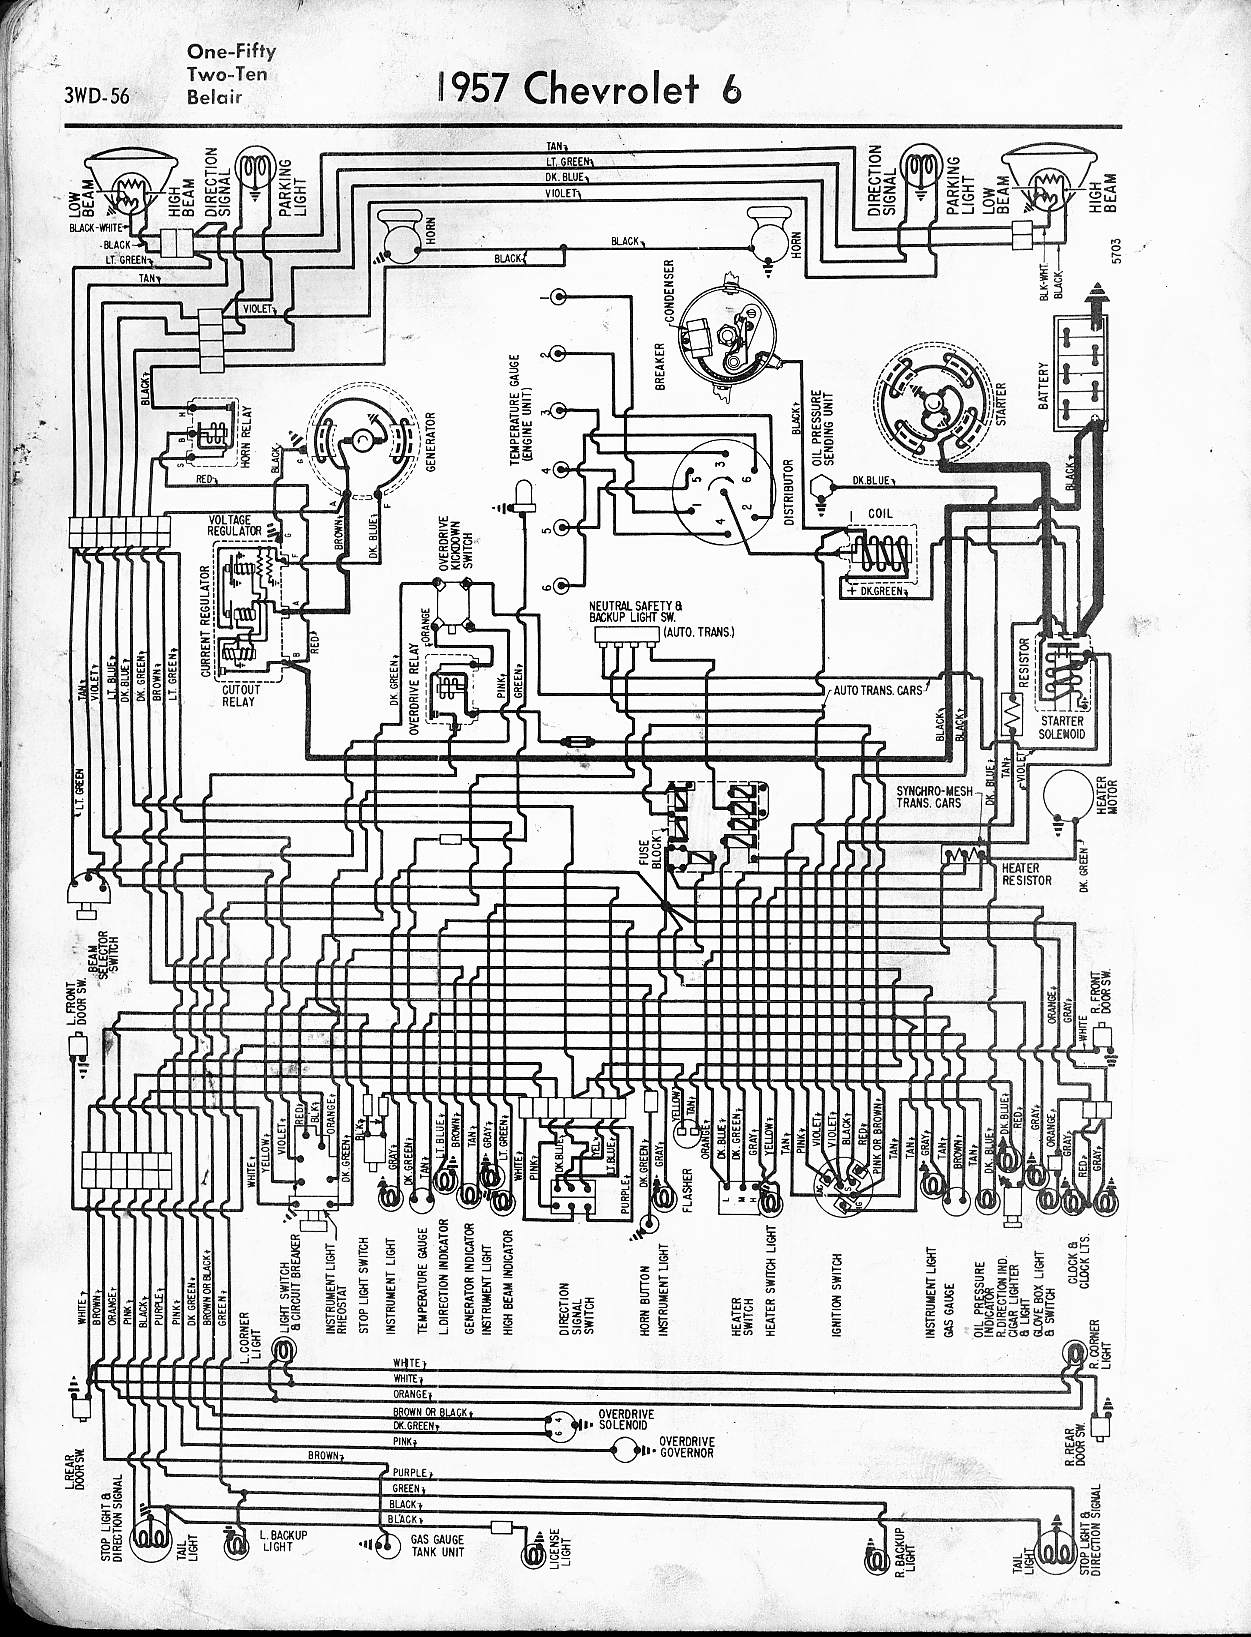 1957 Chevrolet Wiring Diagram Reinvent Your Chevy Truck 57 65 Diagrams Rh Oldcarmanualproject Com